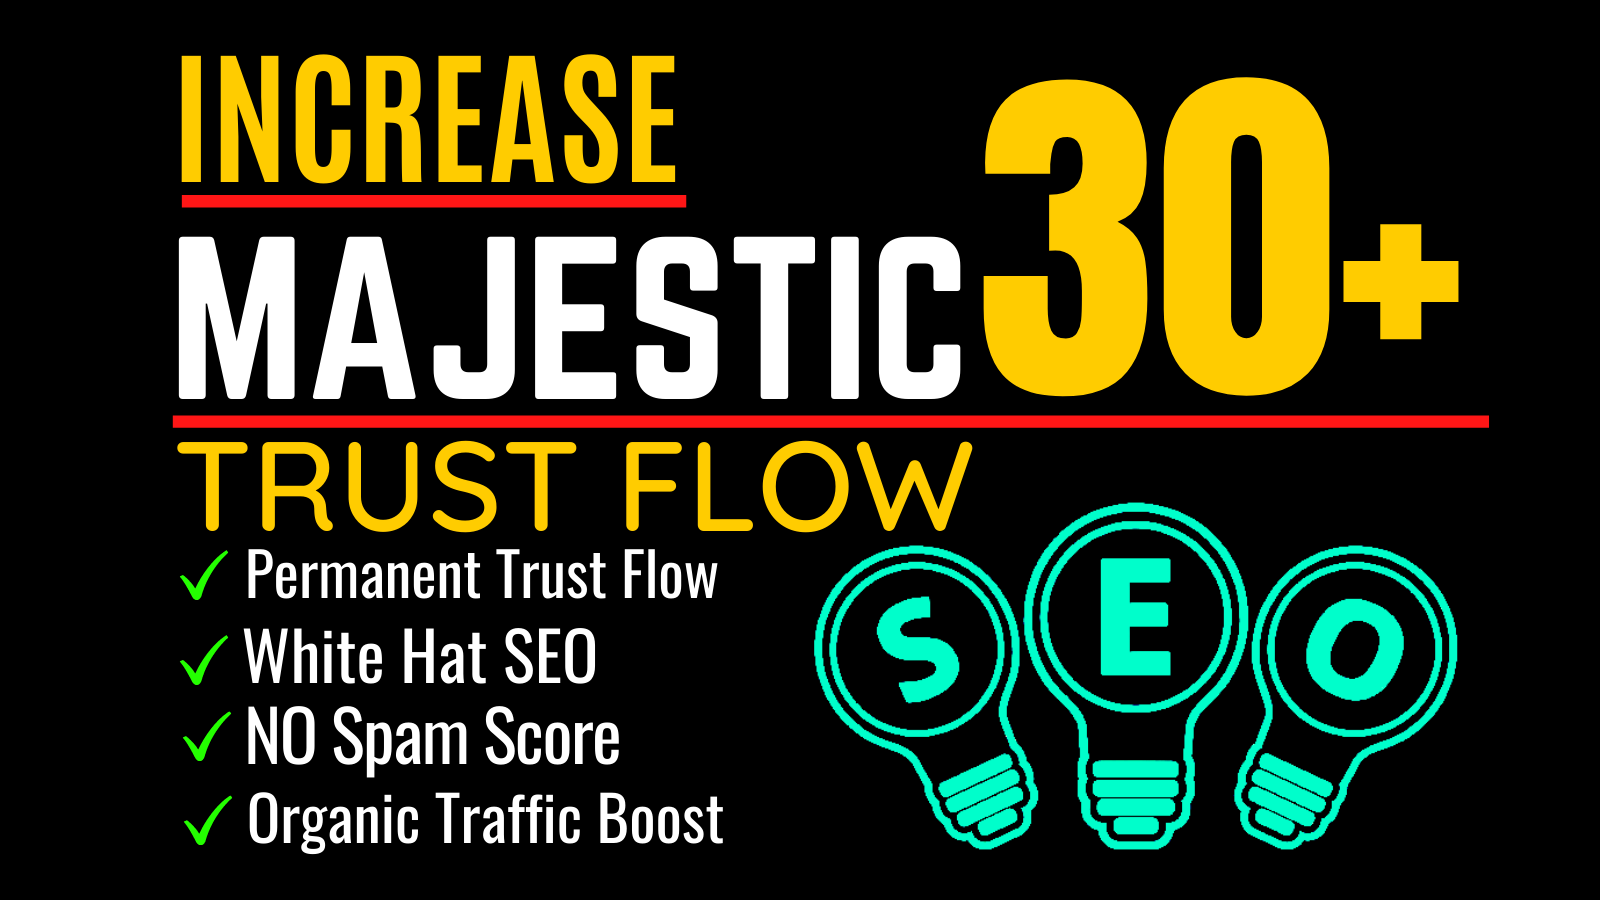 I will increase trust flow,  majestic tf 30 plus guaranteed